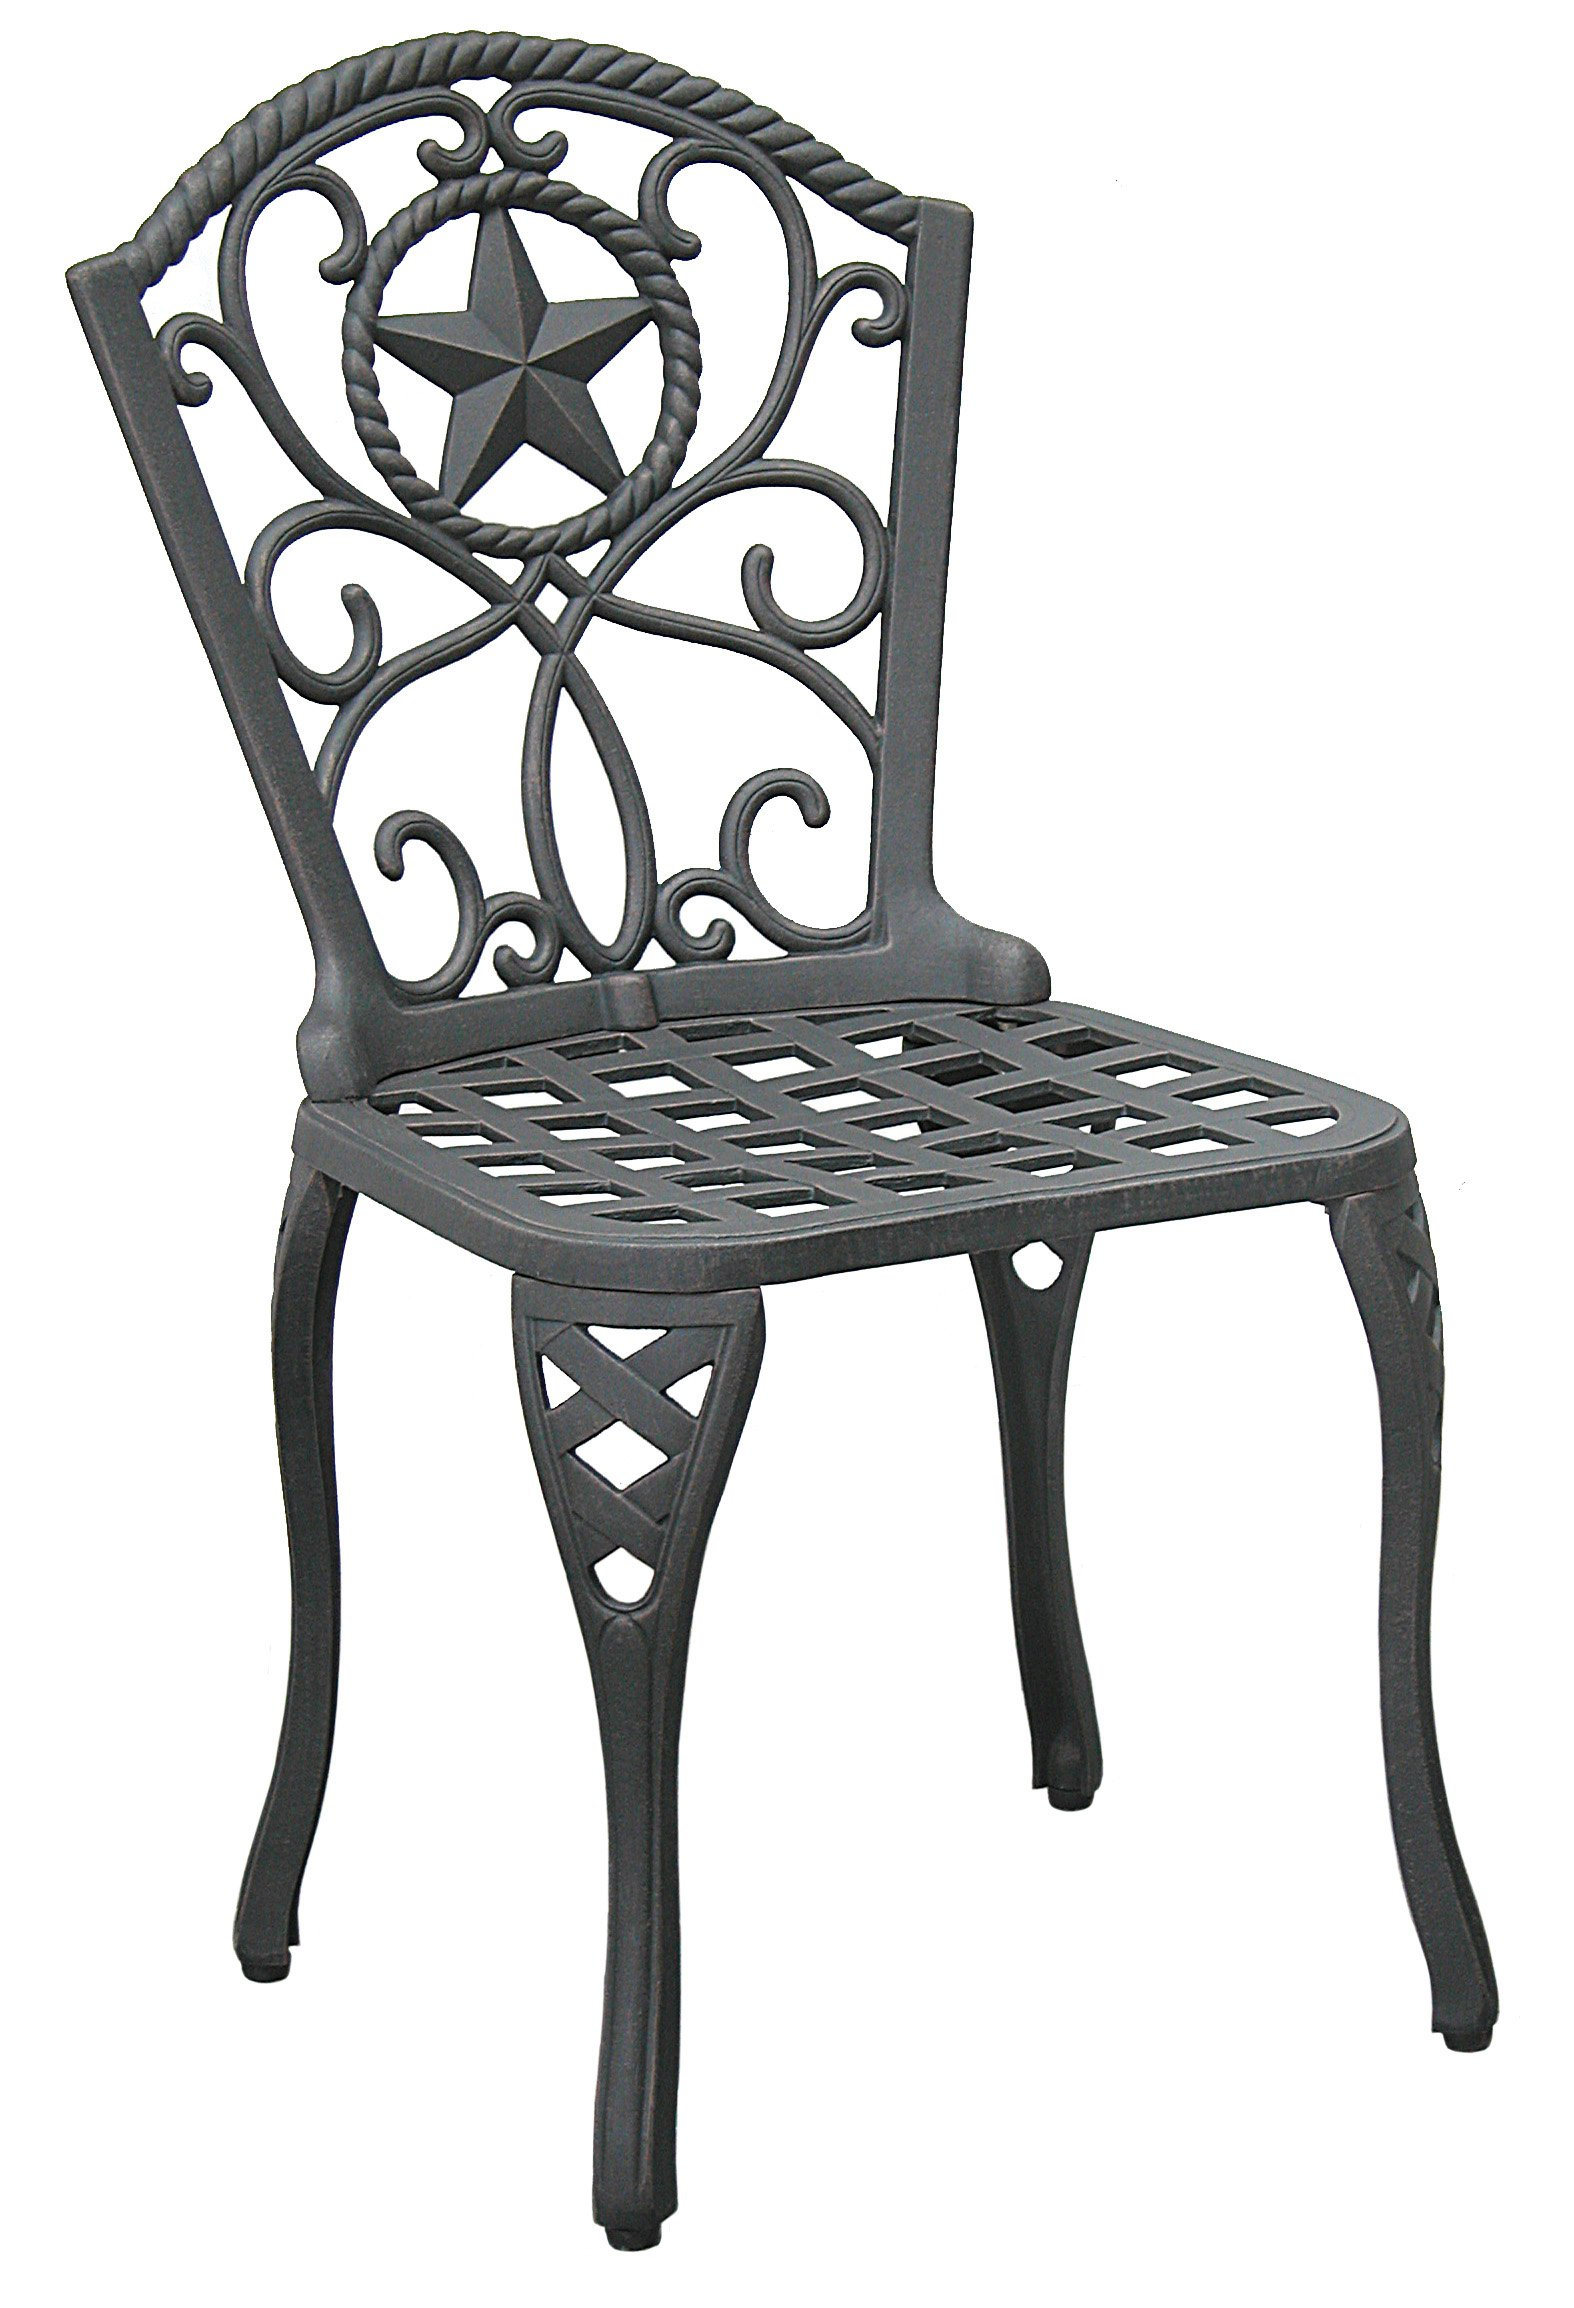 Riata Texas Backyard Small Dining Chair Shop Furniture at HEB